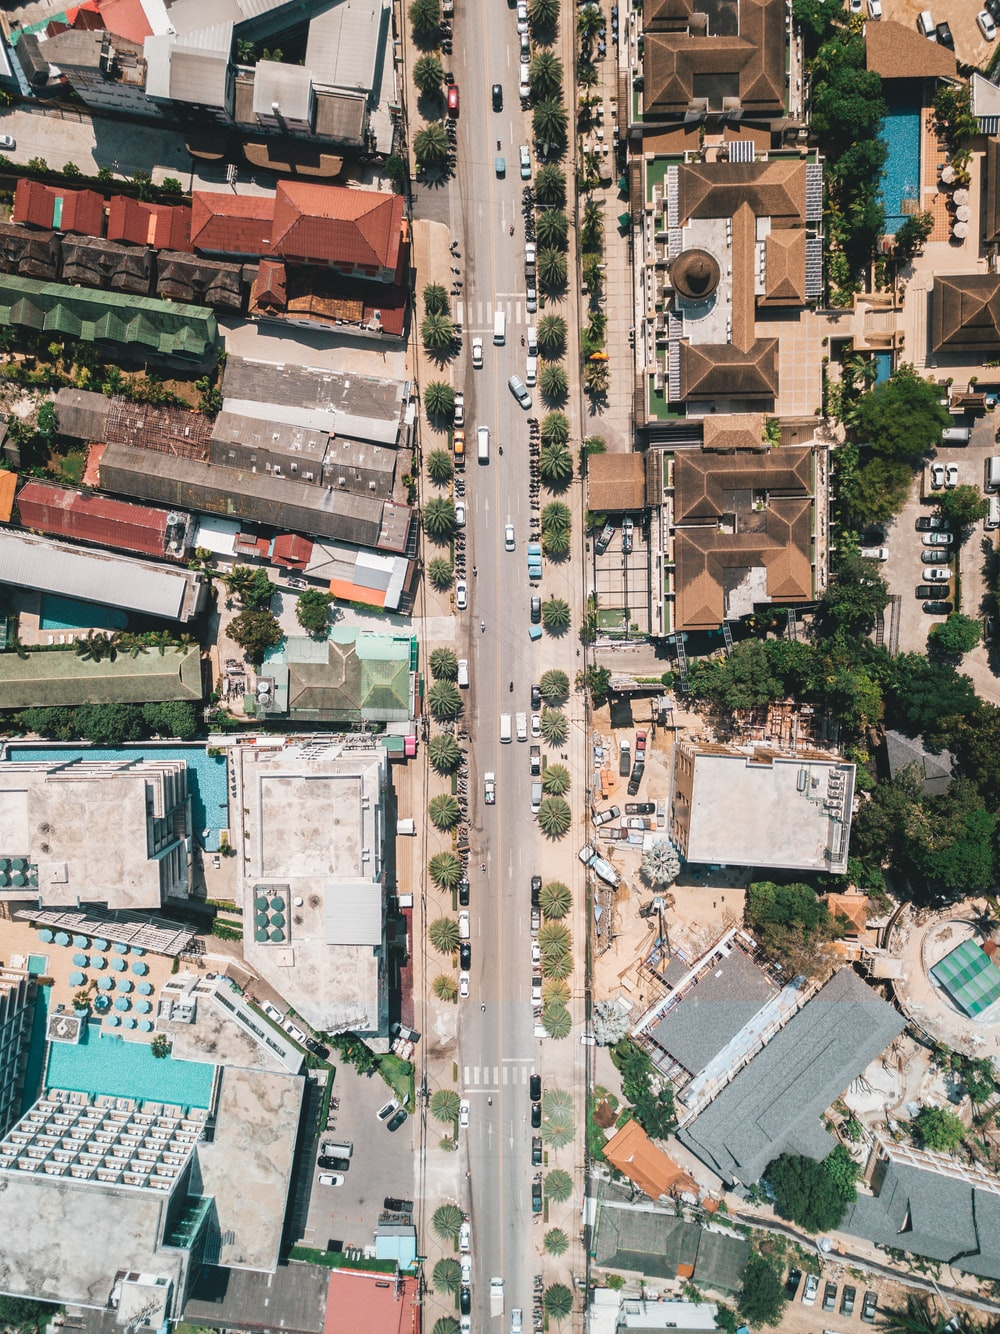 aerial photography of vehicles on road and buildings during daytime